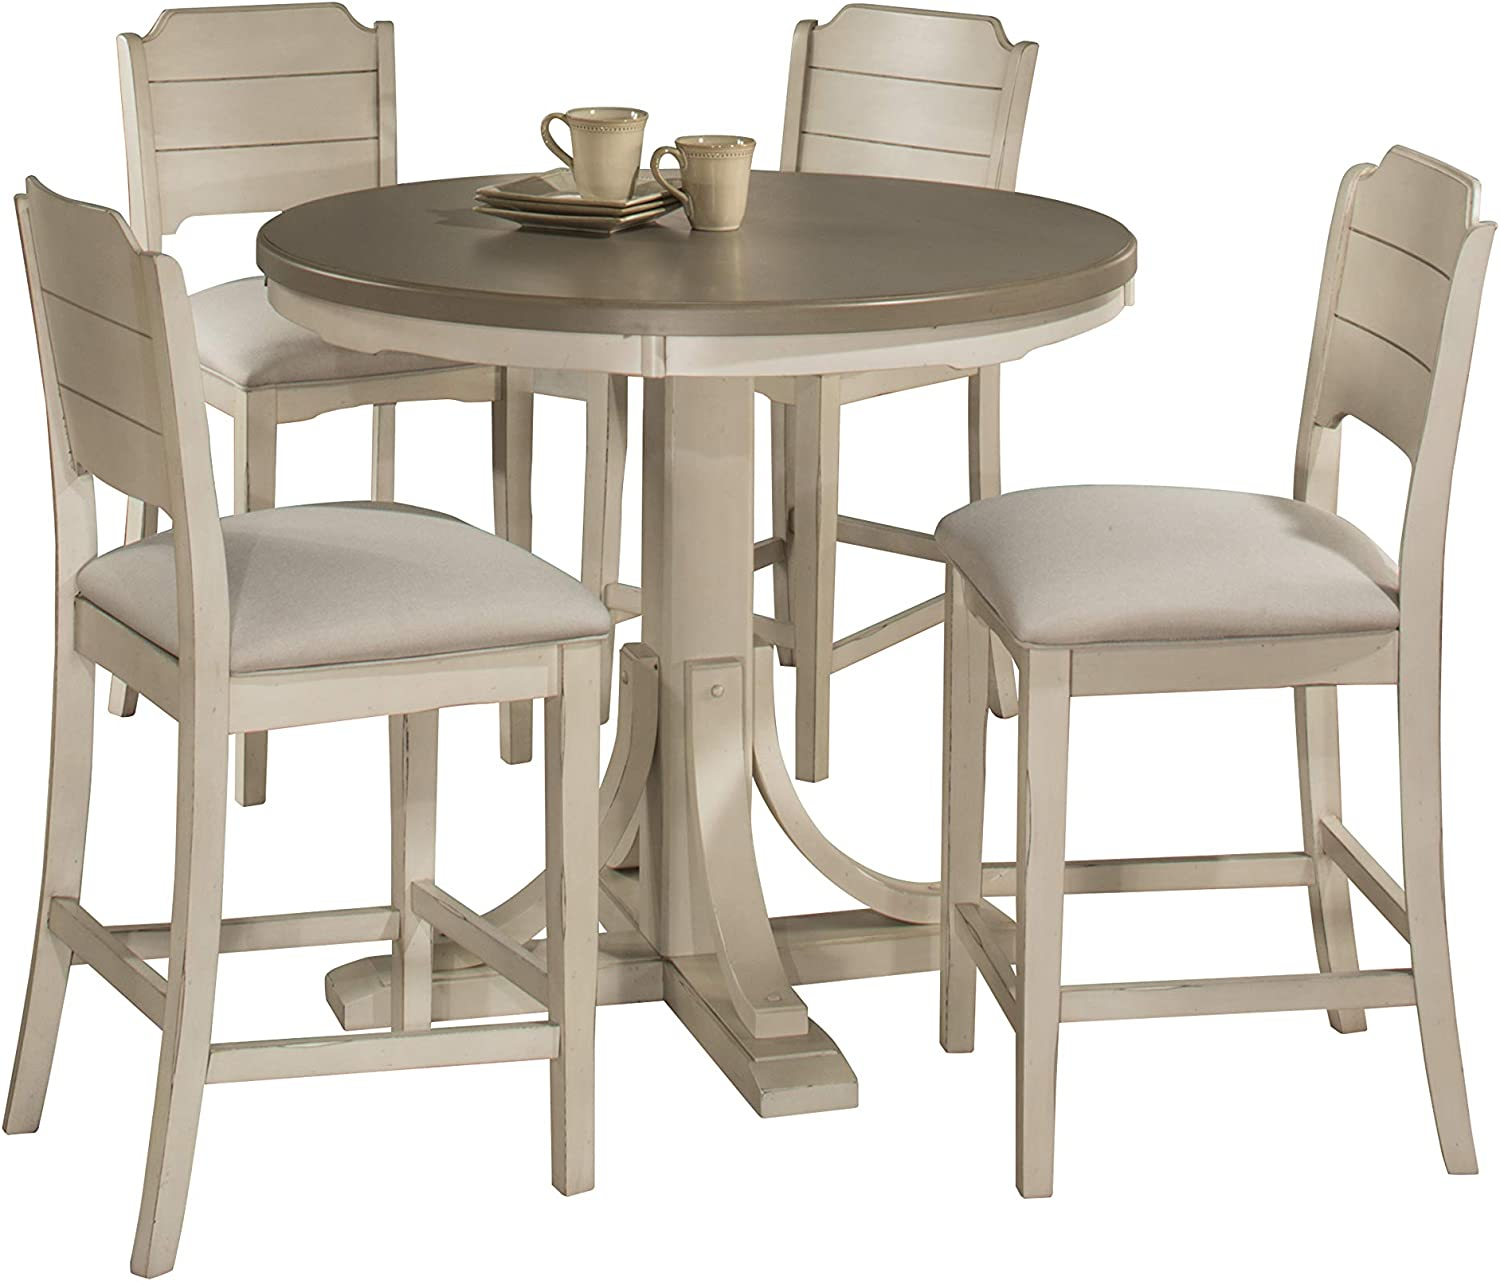 Hillsdale Furniture Hillsdale Clarion Round Counter Height Open Back Stools Distressed Gray Sea White 5 Piece Dining Set Table Chair Sets